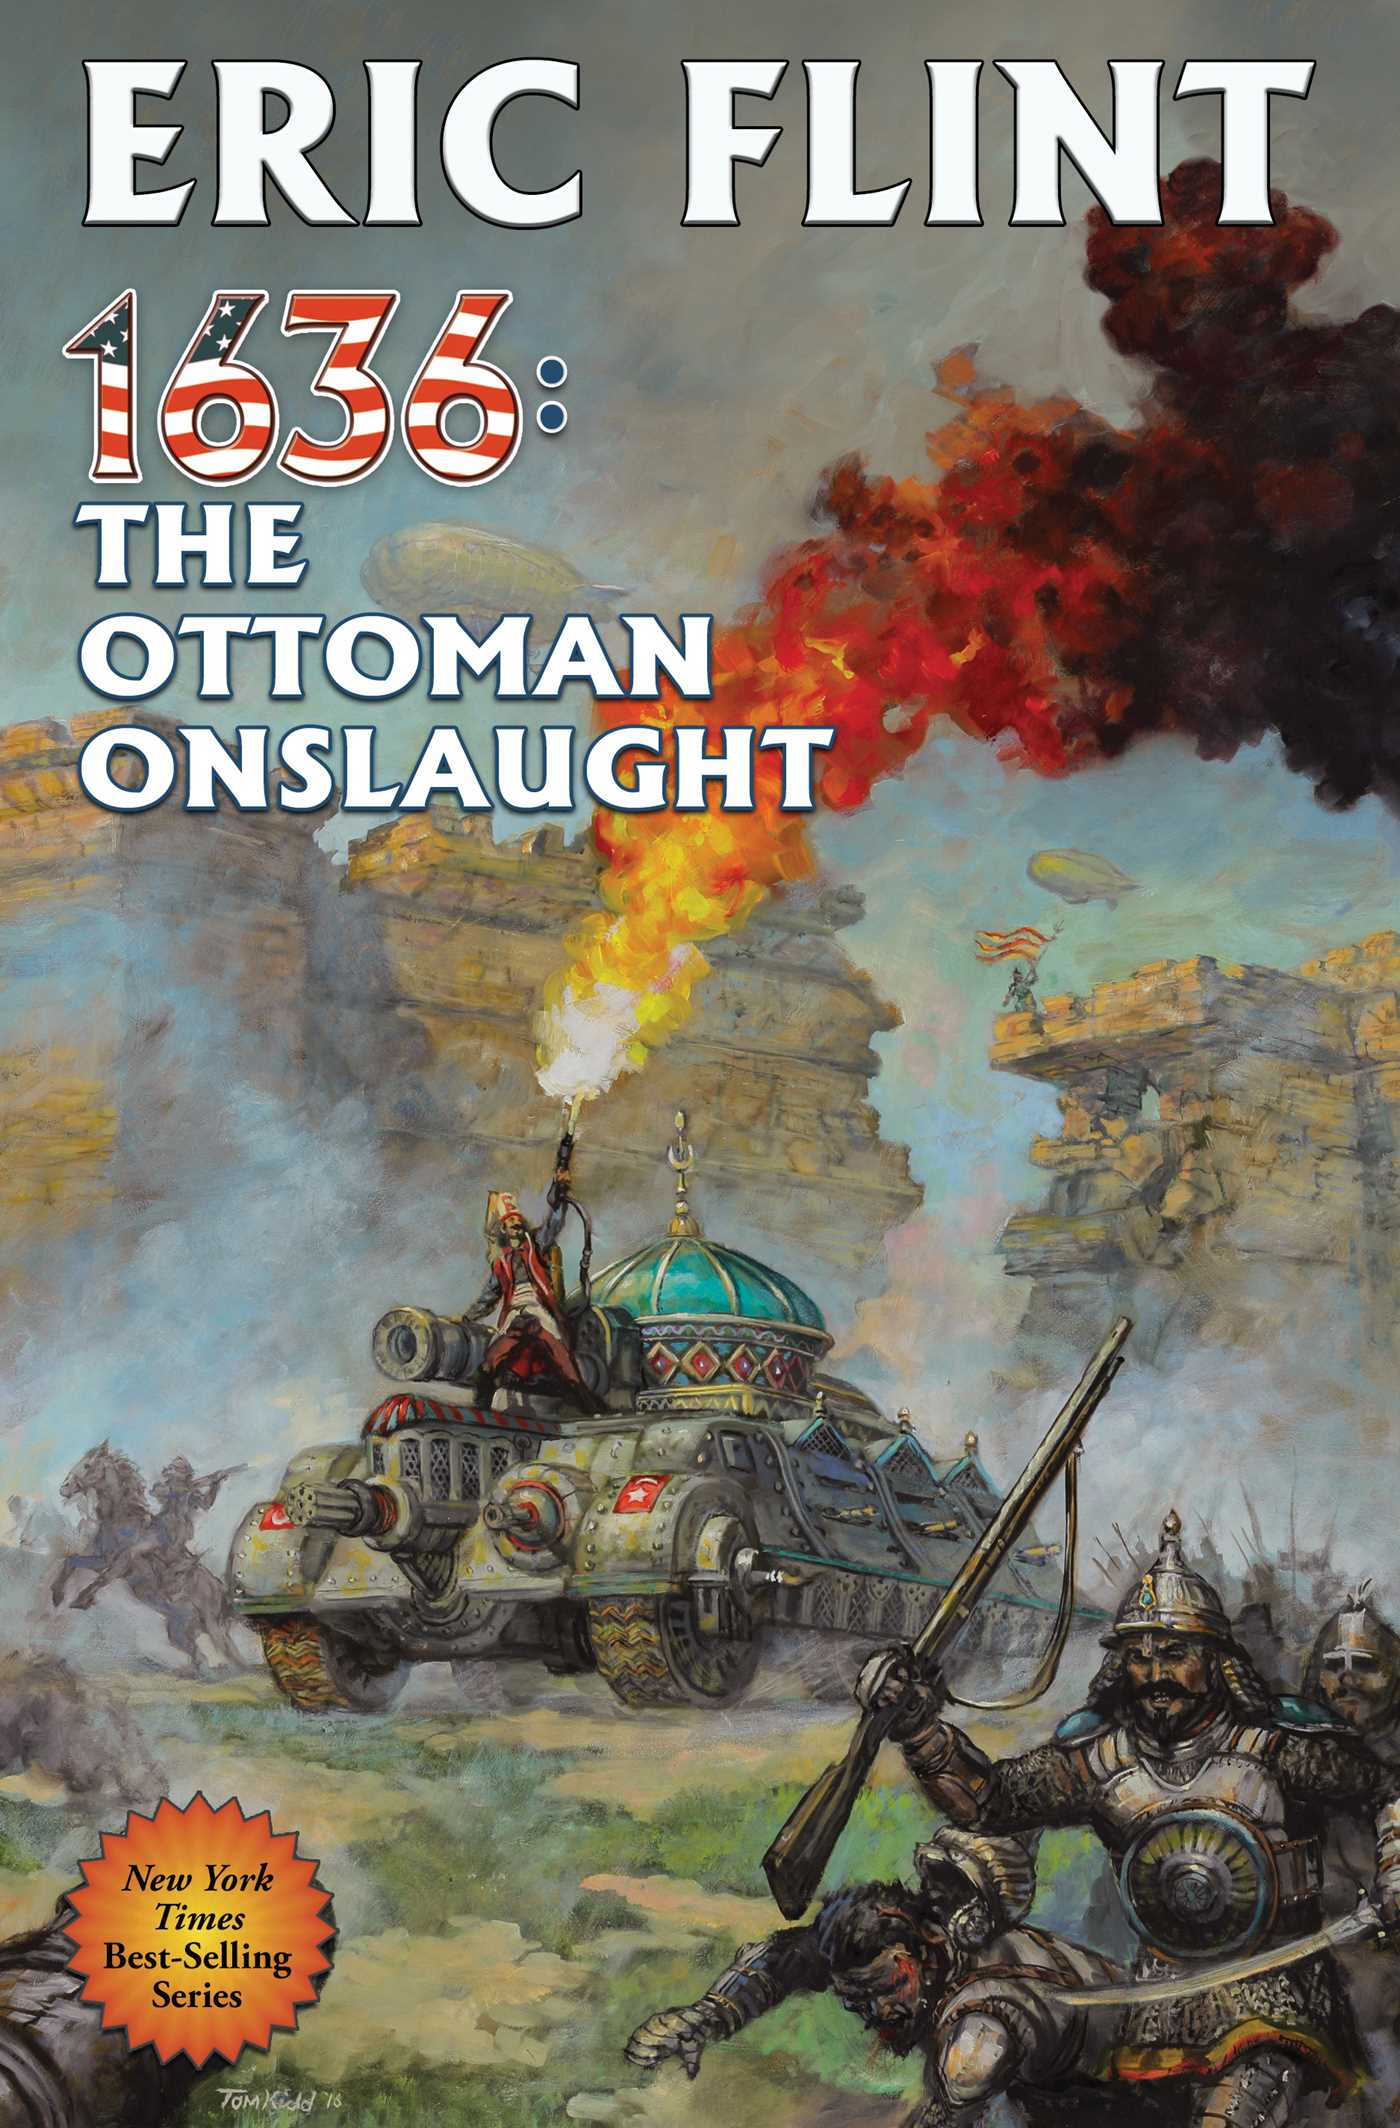 Book Cover Image (jpg): 1636: The Ottoman Onslaught